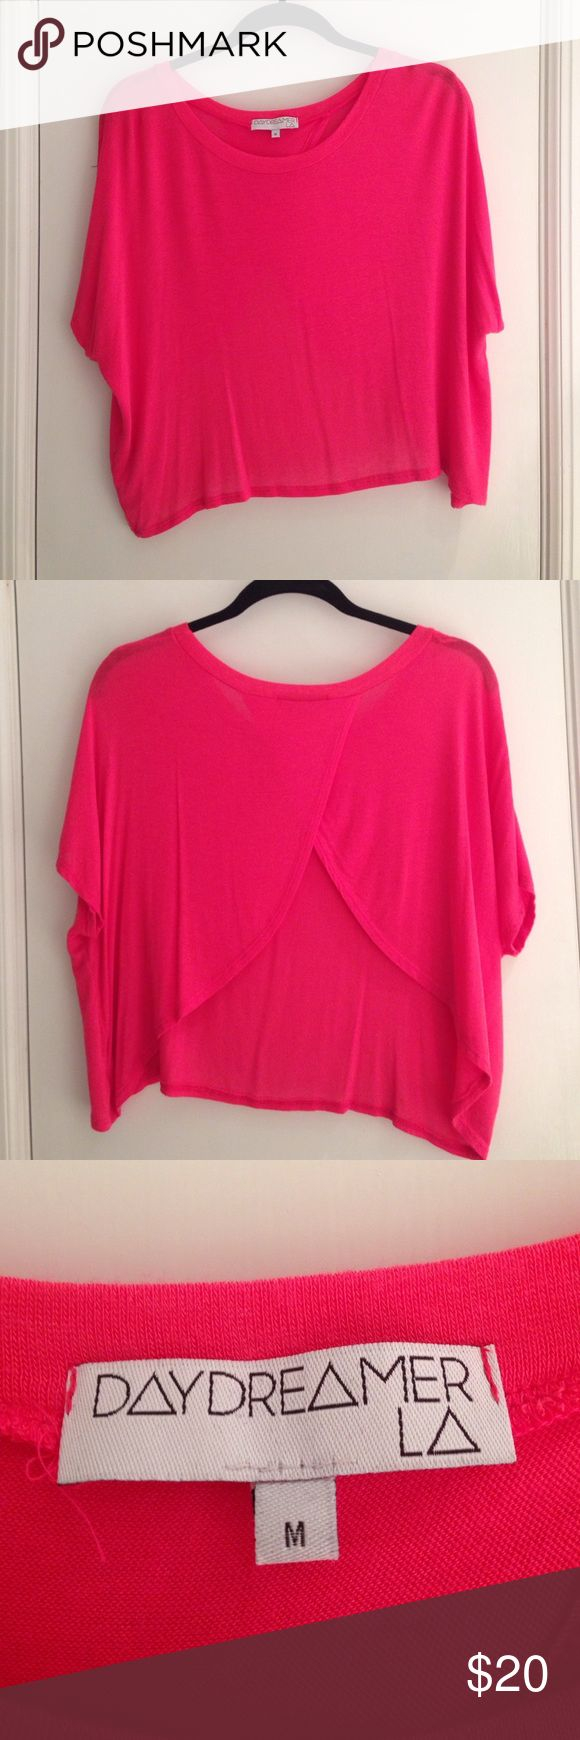 Women's Pink Top Pink, with split back. Perfect to pair with shorts or jeans or dress up with a skirt. Super comfortable and easy. Urban Outfitters Tops Tees - Short Sleeve